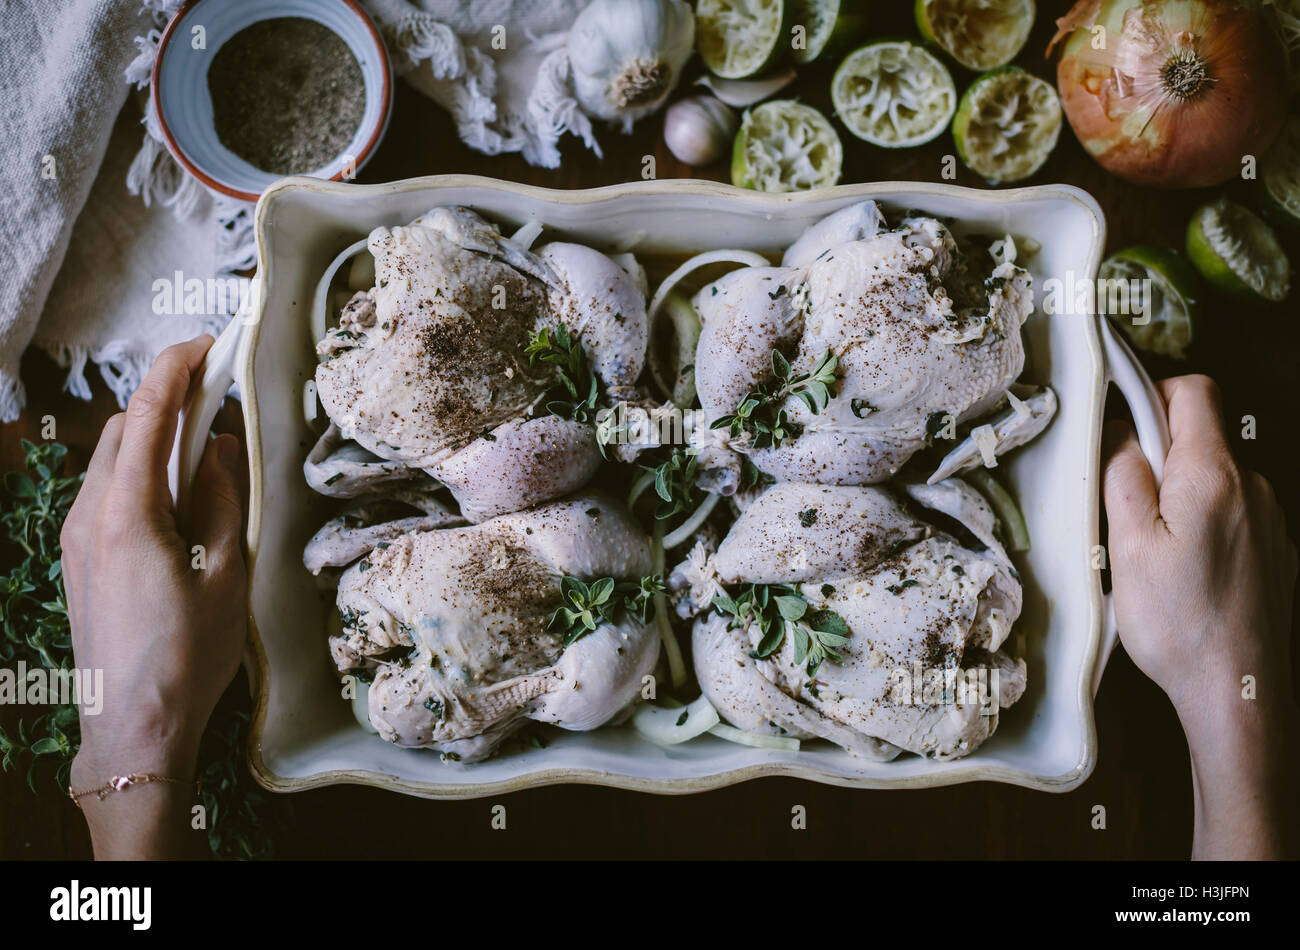 4 seasoned game hens are placed in a casserole pan are about to be placed in the oven. Stock Photo